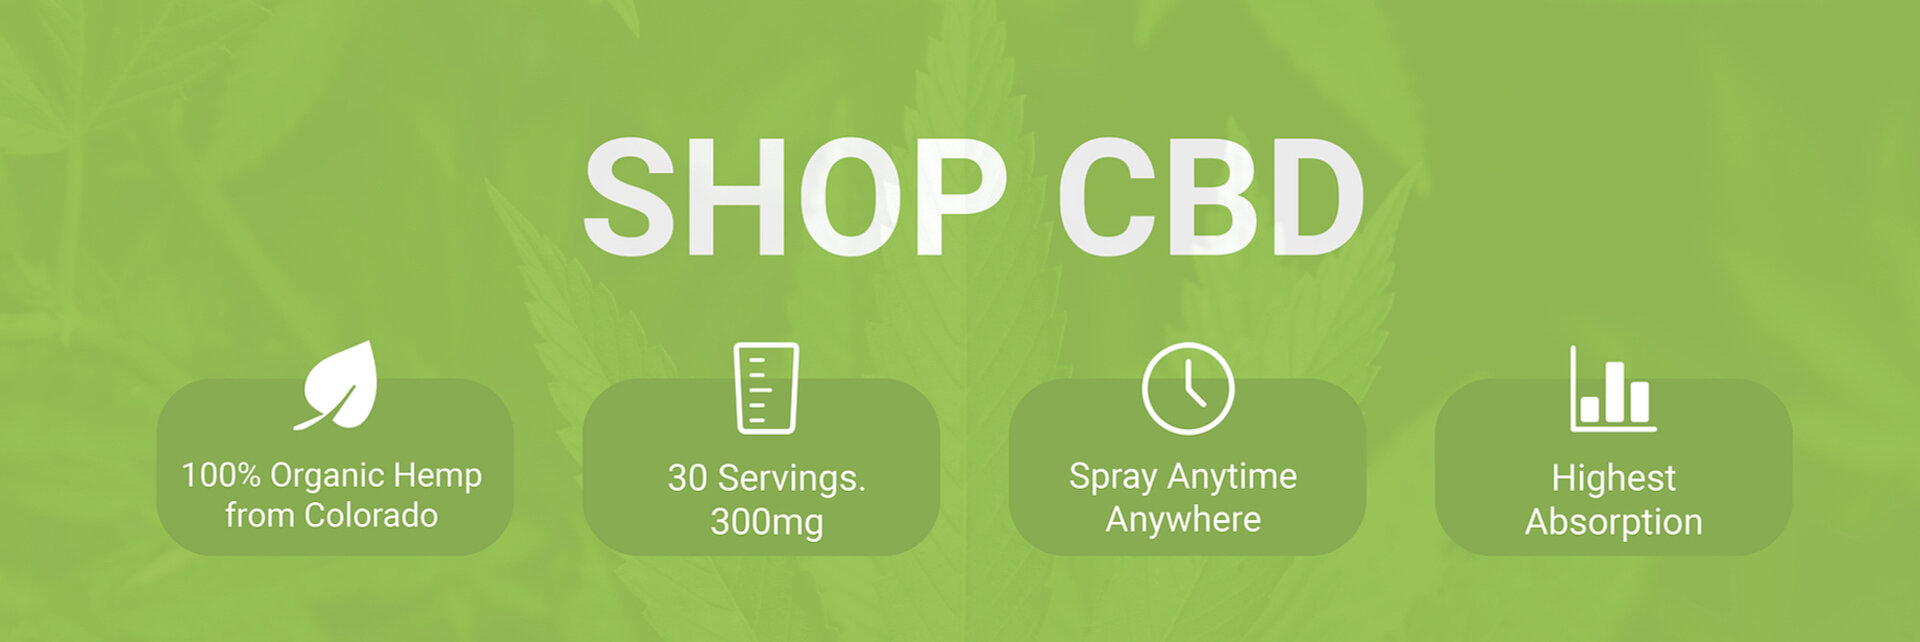 https://www.spectraspray.com/cbd-products